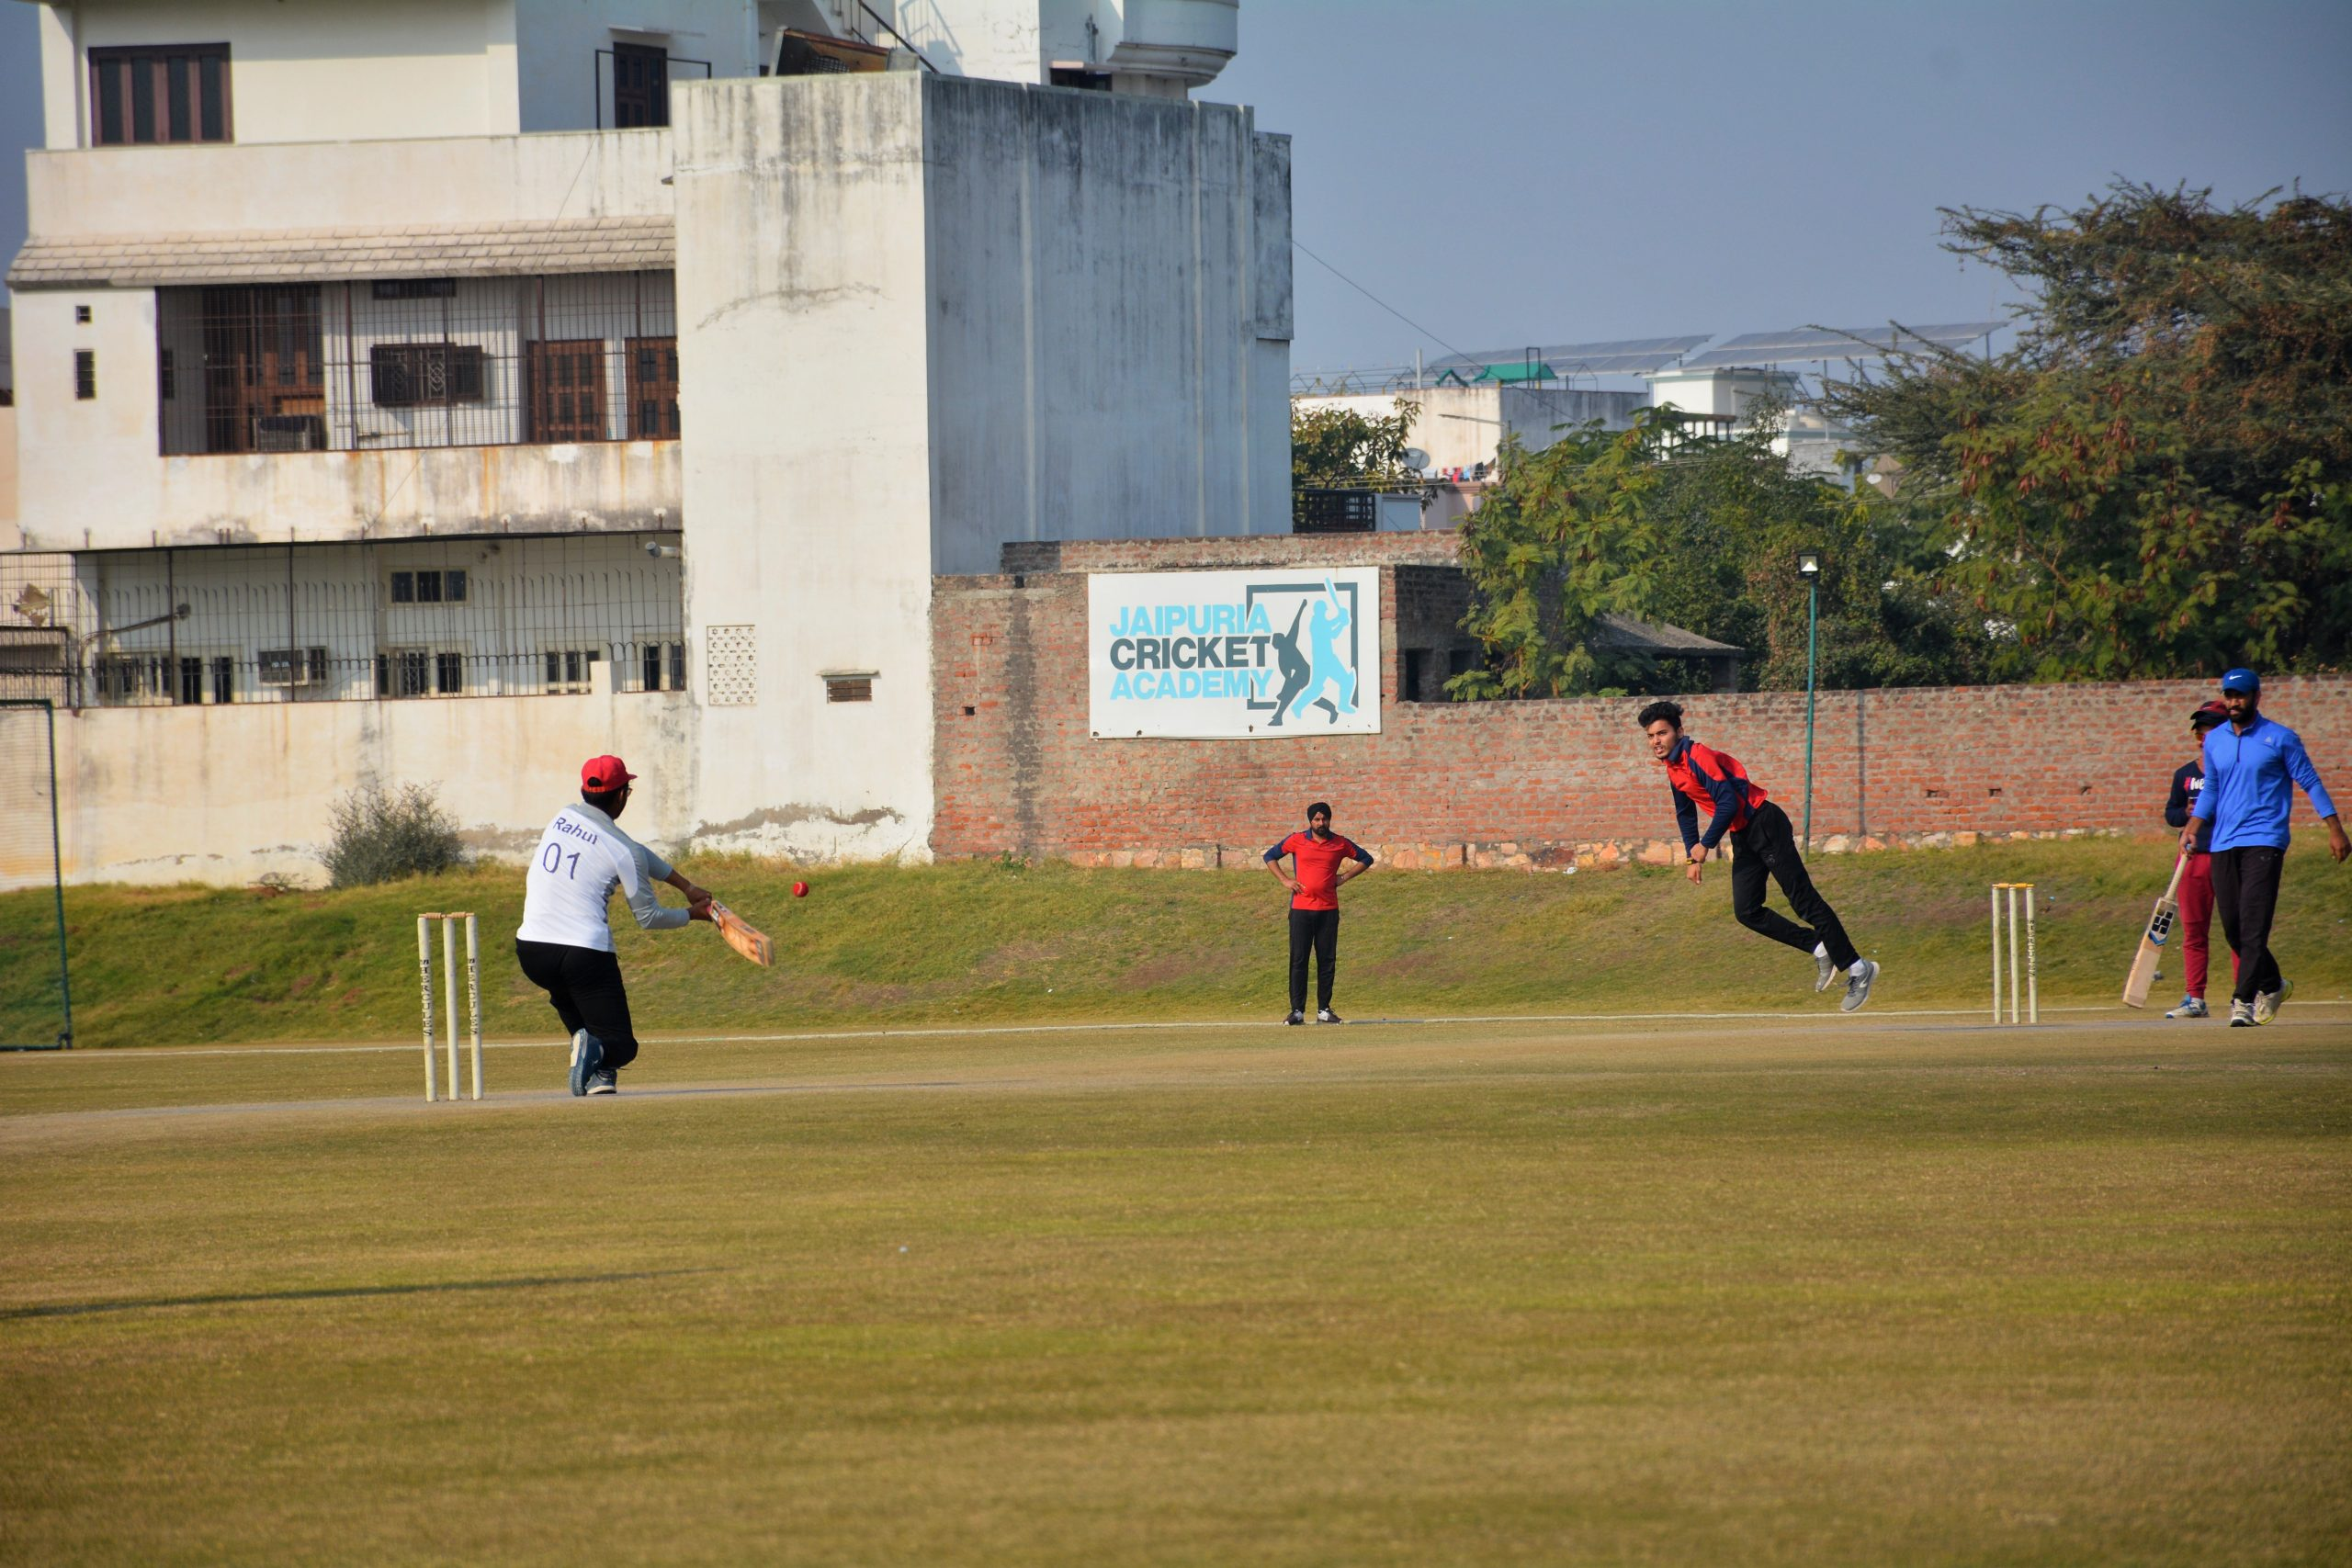 boys playing cricket in the ground